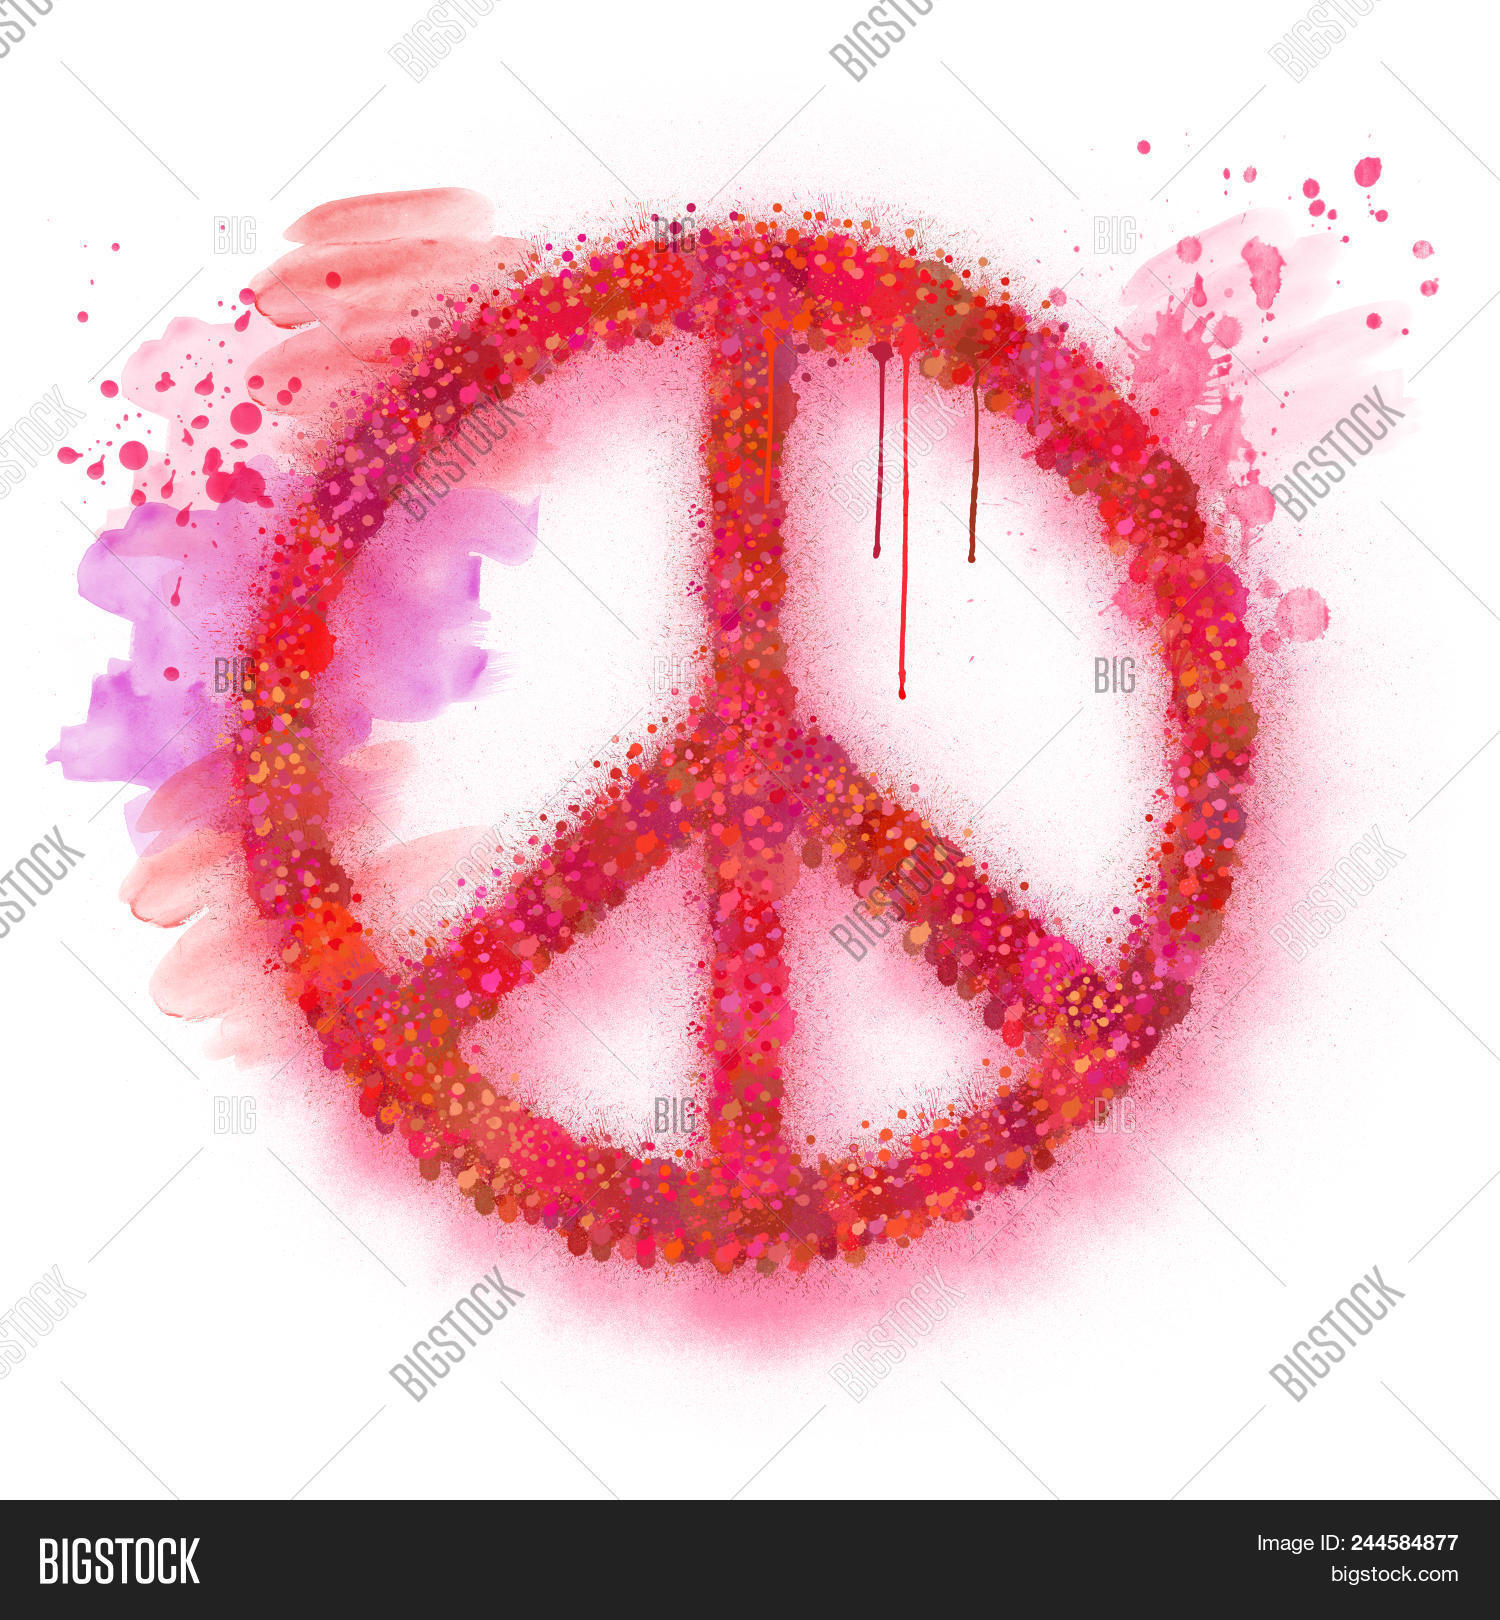 Watercolor Peace Sign Image Photo Free Trial Bigstock